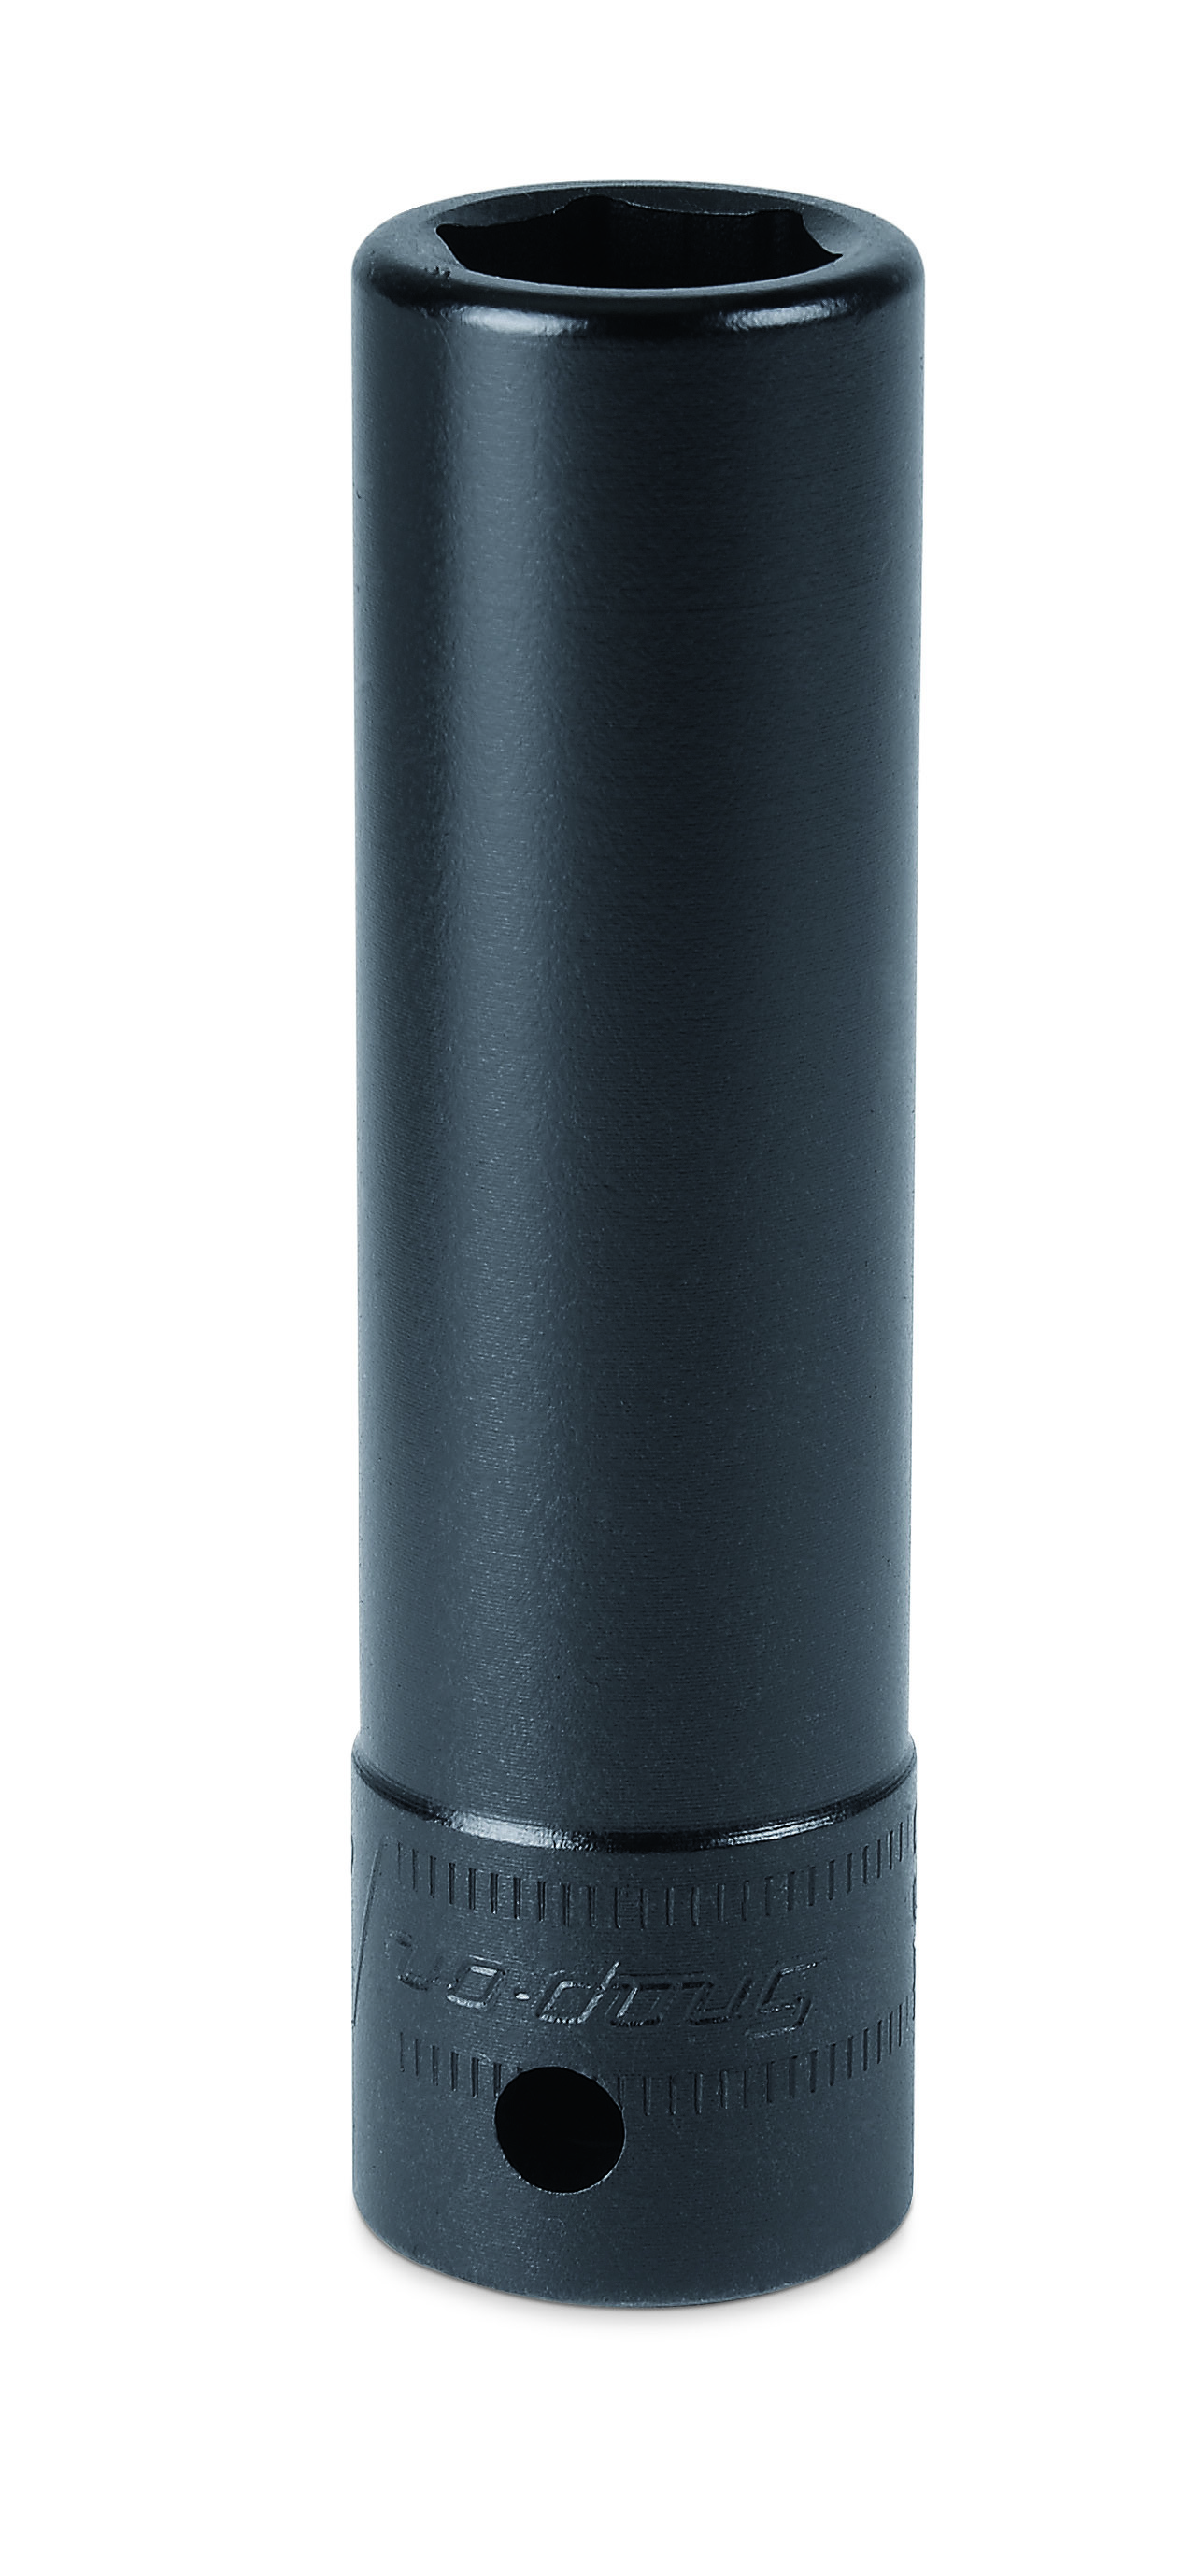 Snap-on Drive 14mm 6-point Impact Socket for Mack, Volvo